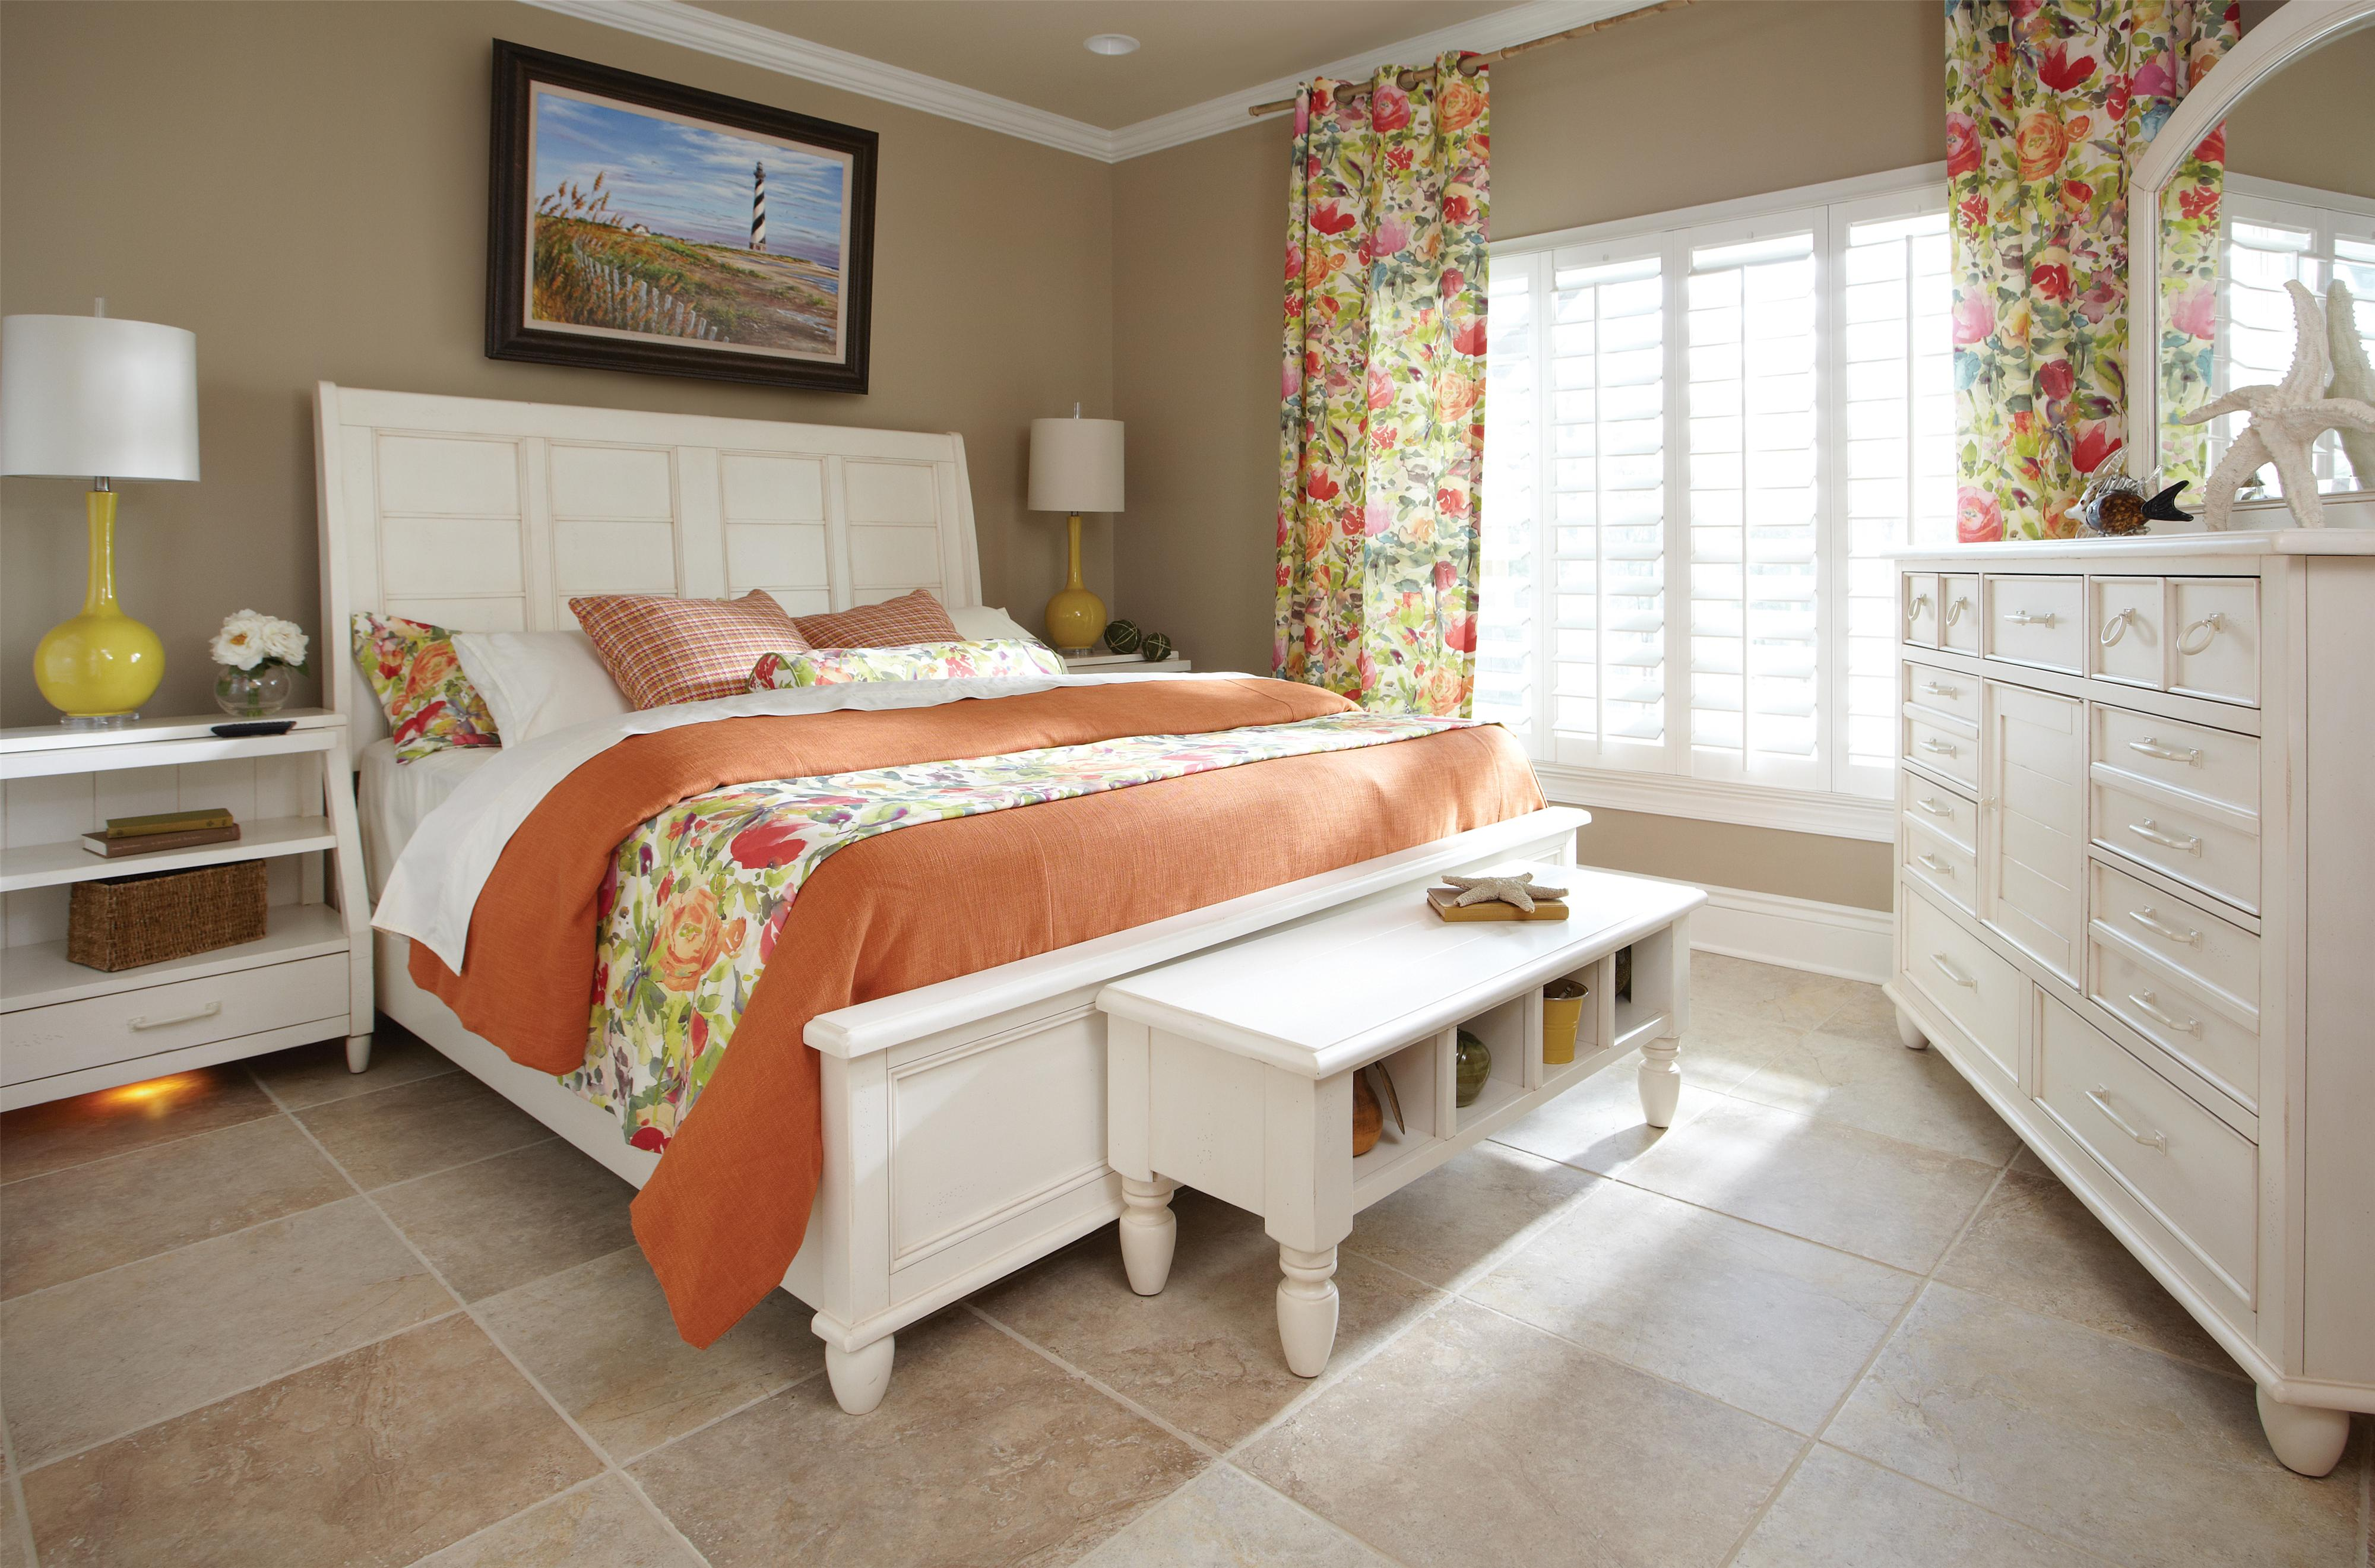 Easton Collection Sea Breeze Queen Bedroom Group - Item Number: 424 Q Bedroom Group 4